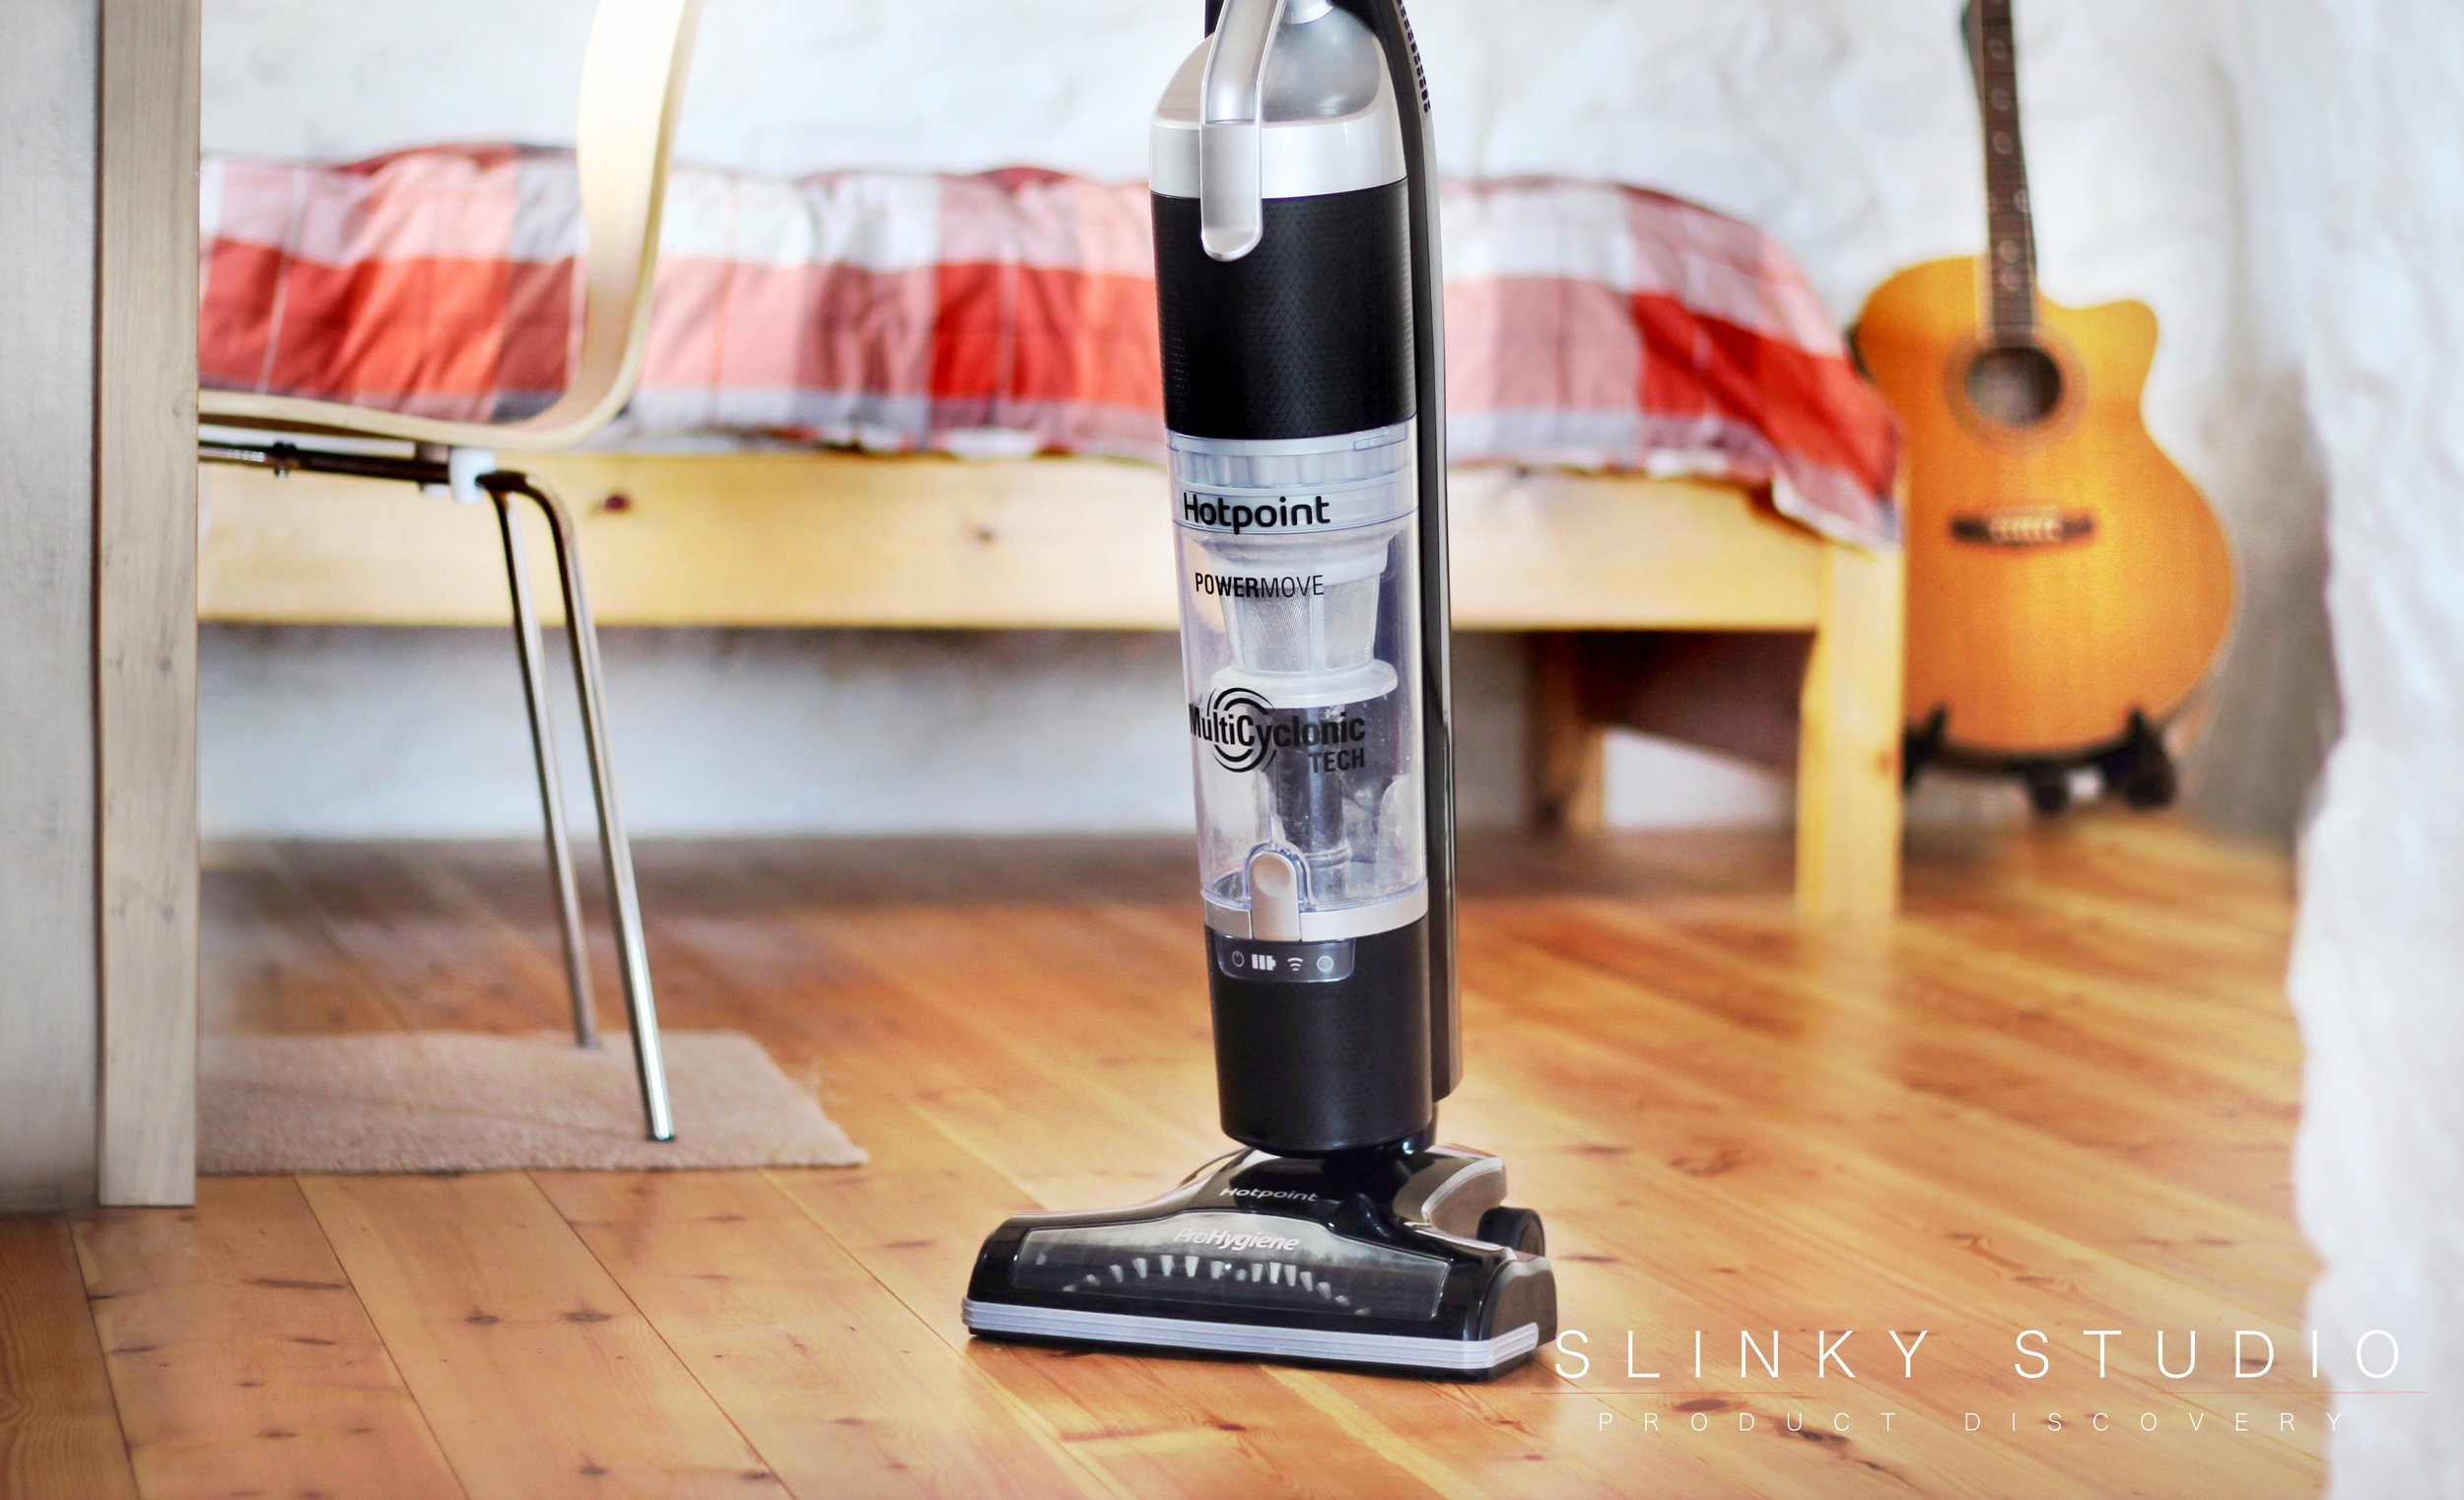 Hotpoint are entering what is now a mature cordless cleaner marketplace with their new slimline upright Ultimate Collection Cordless Cleaner Full Body.jpg